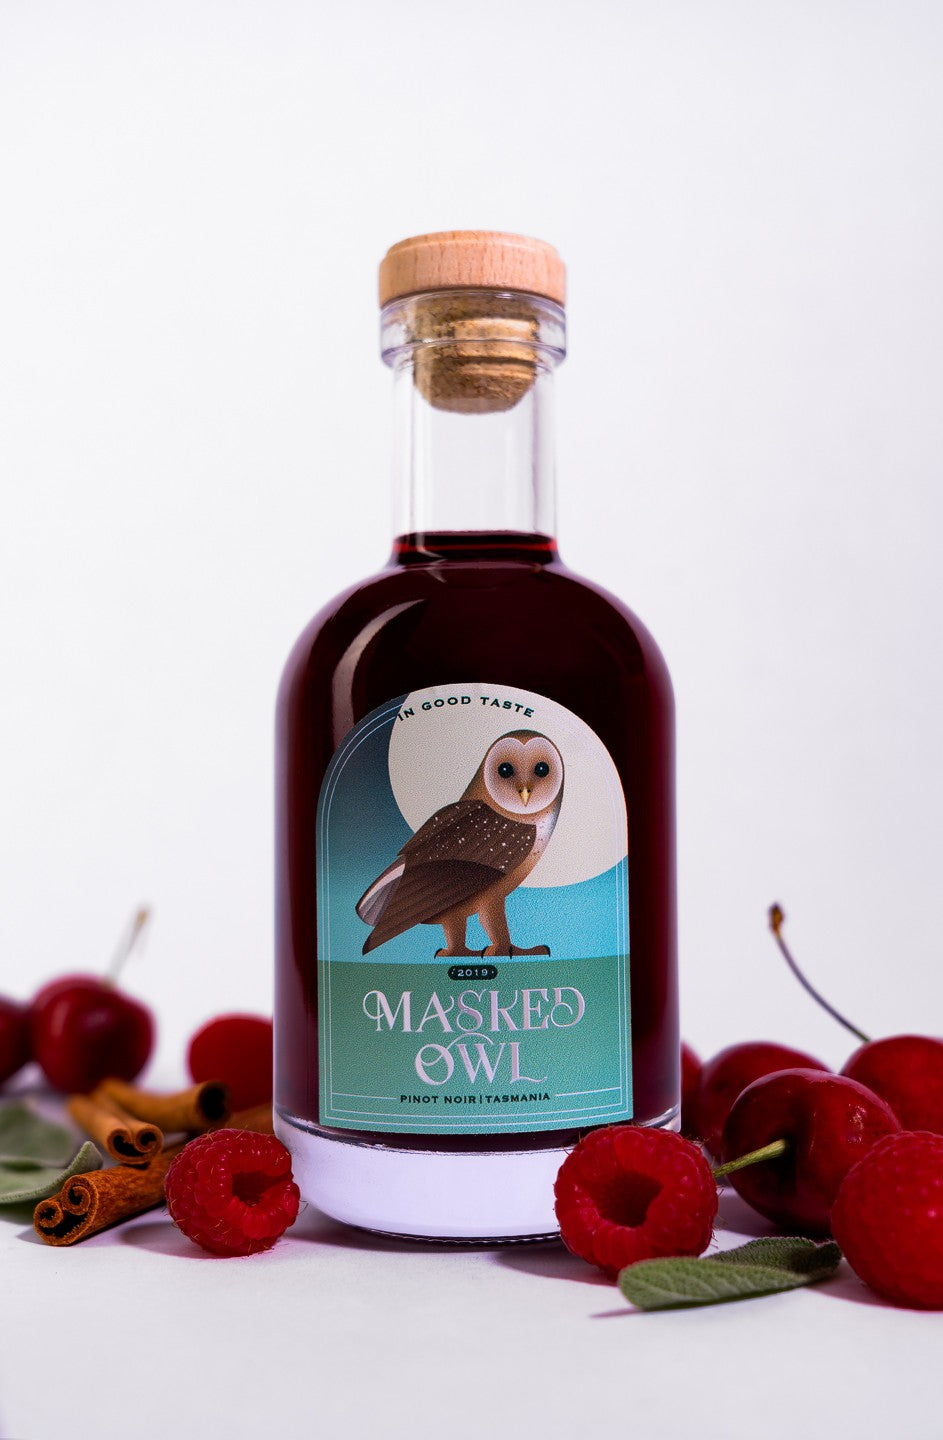 Wines Down Under - Masked Owl - Pinot Noir